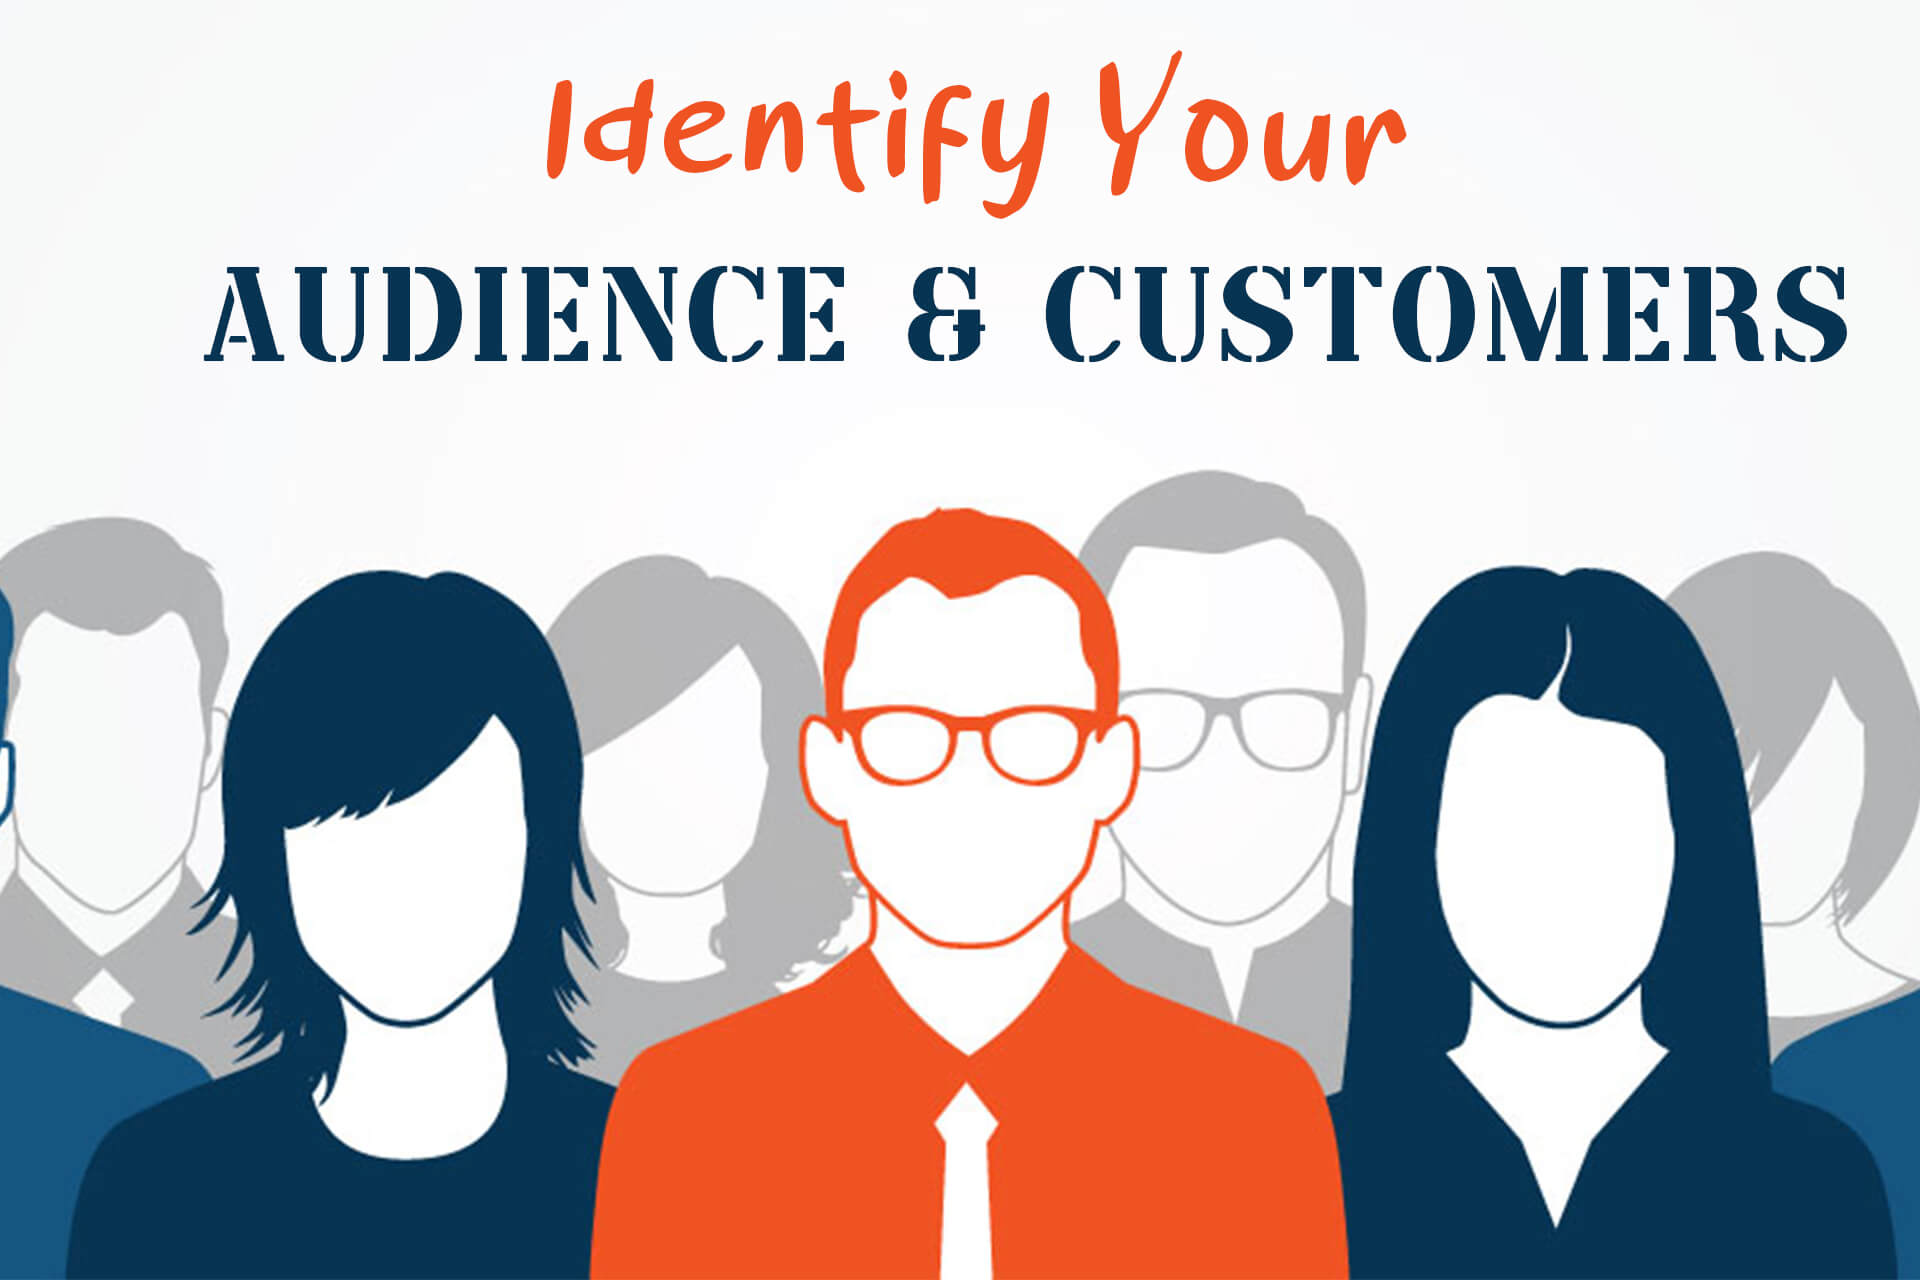 Identify Your Audience & Customers